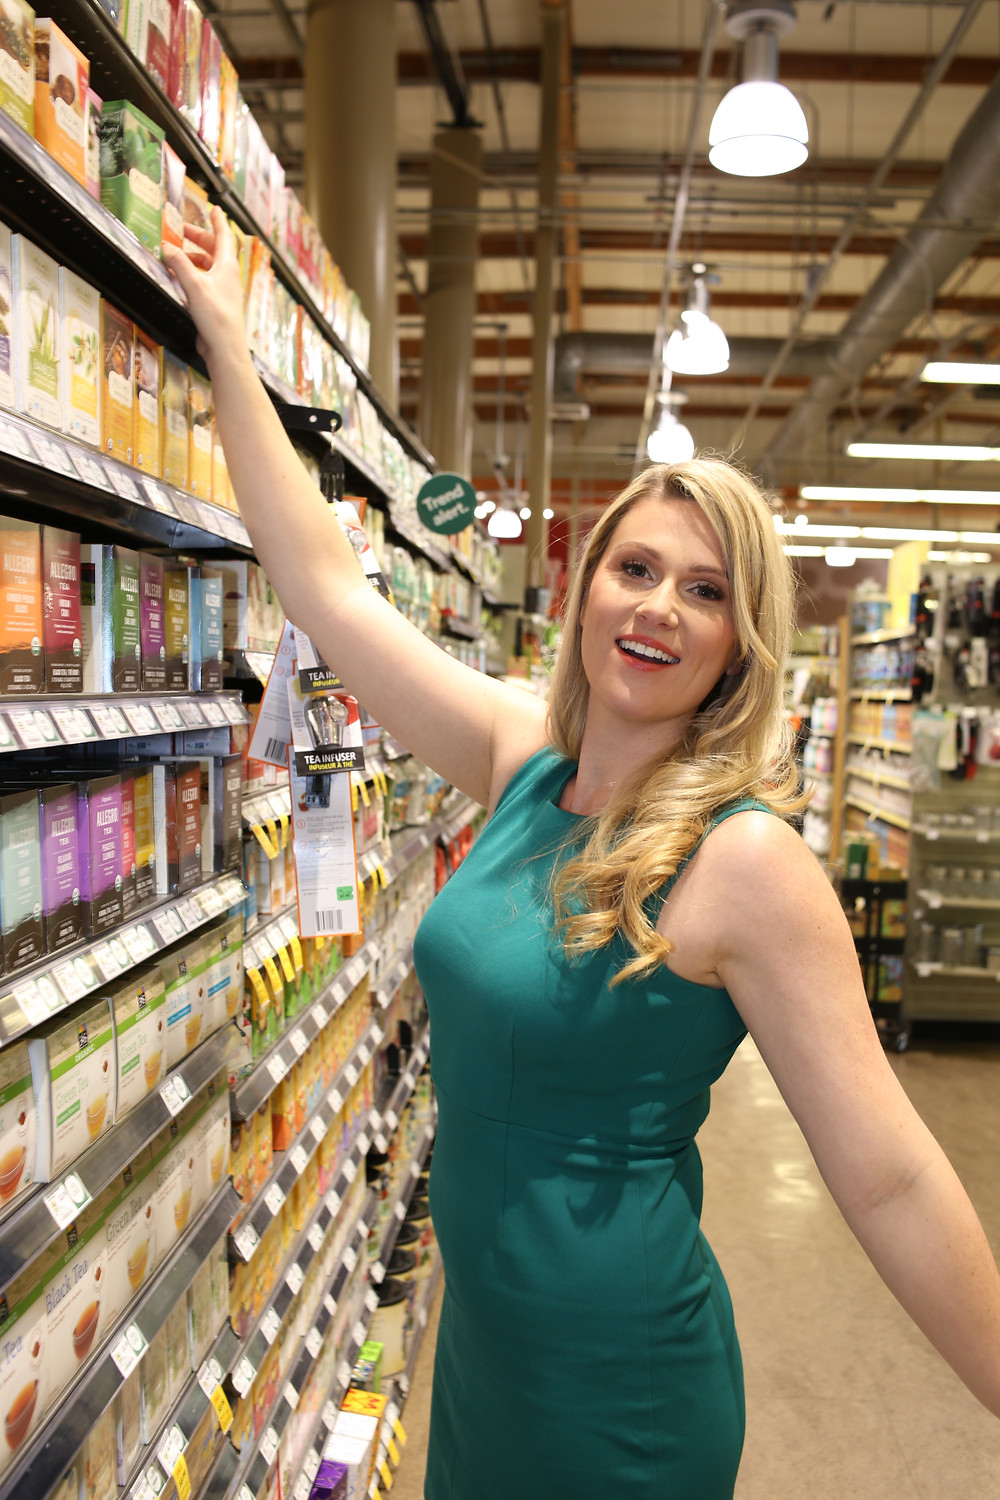 Here I stand admiring the packaging designs in the tea aisle of a Whole Foods in Dallas. The bright orange box caught my eye!